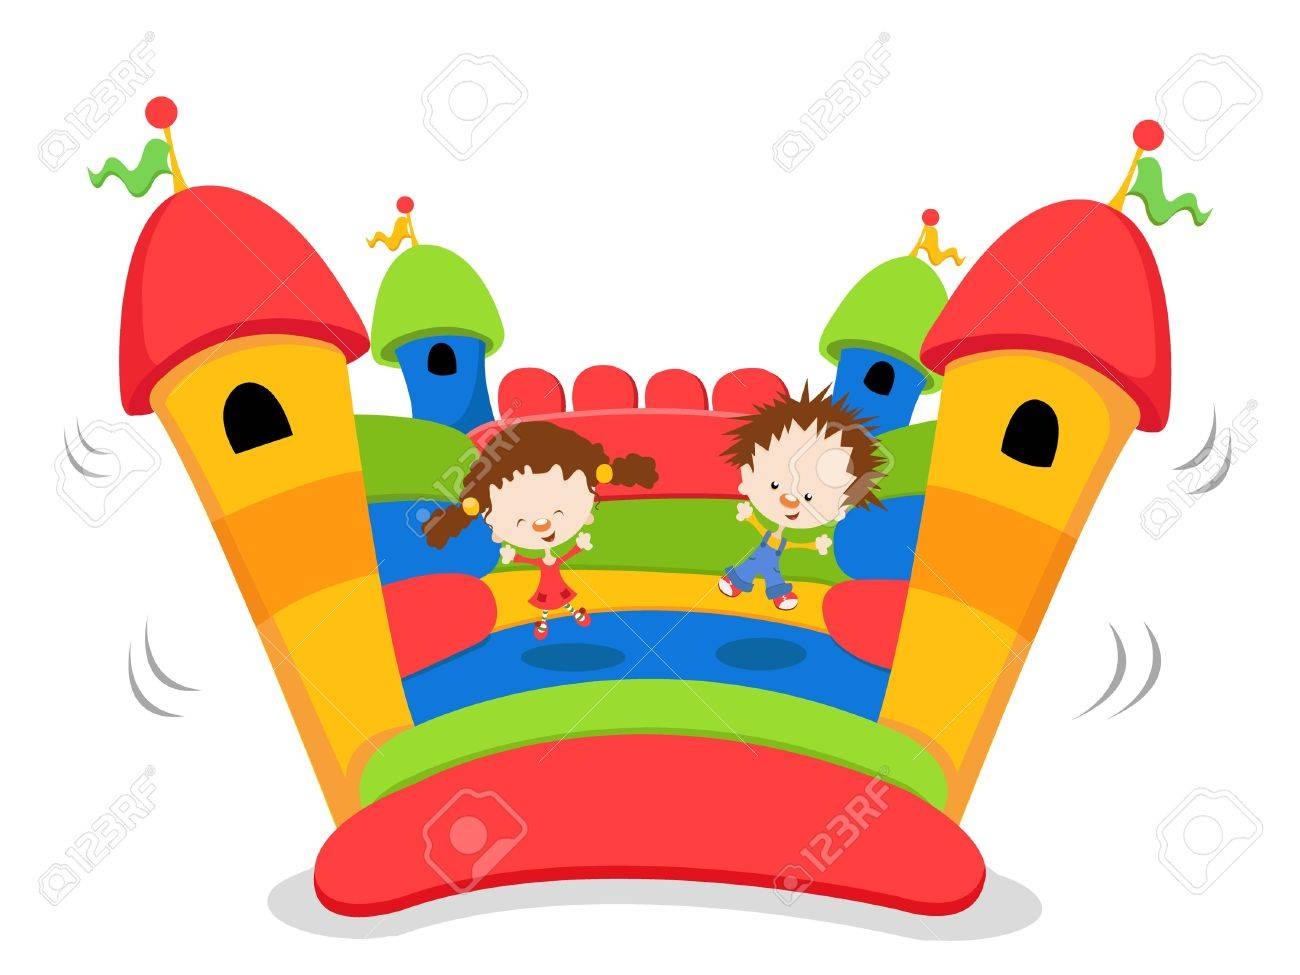 Kids Playing On Bouncy Castle.